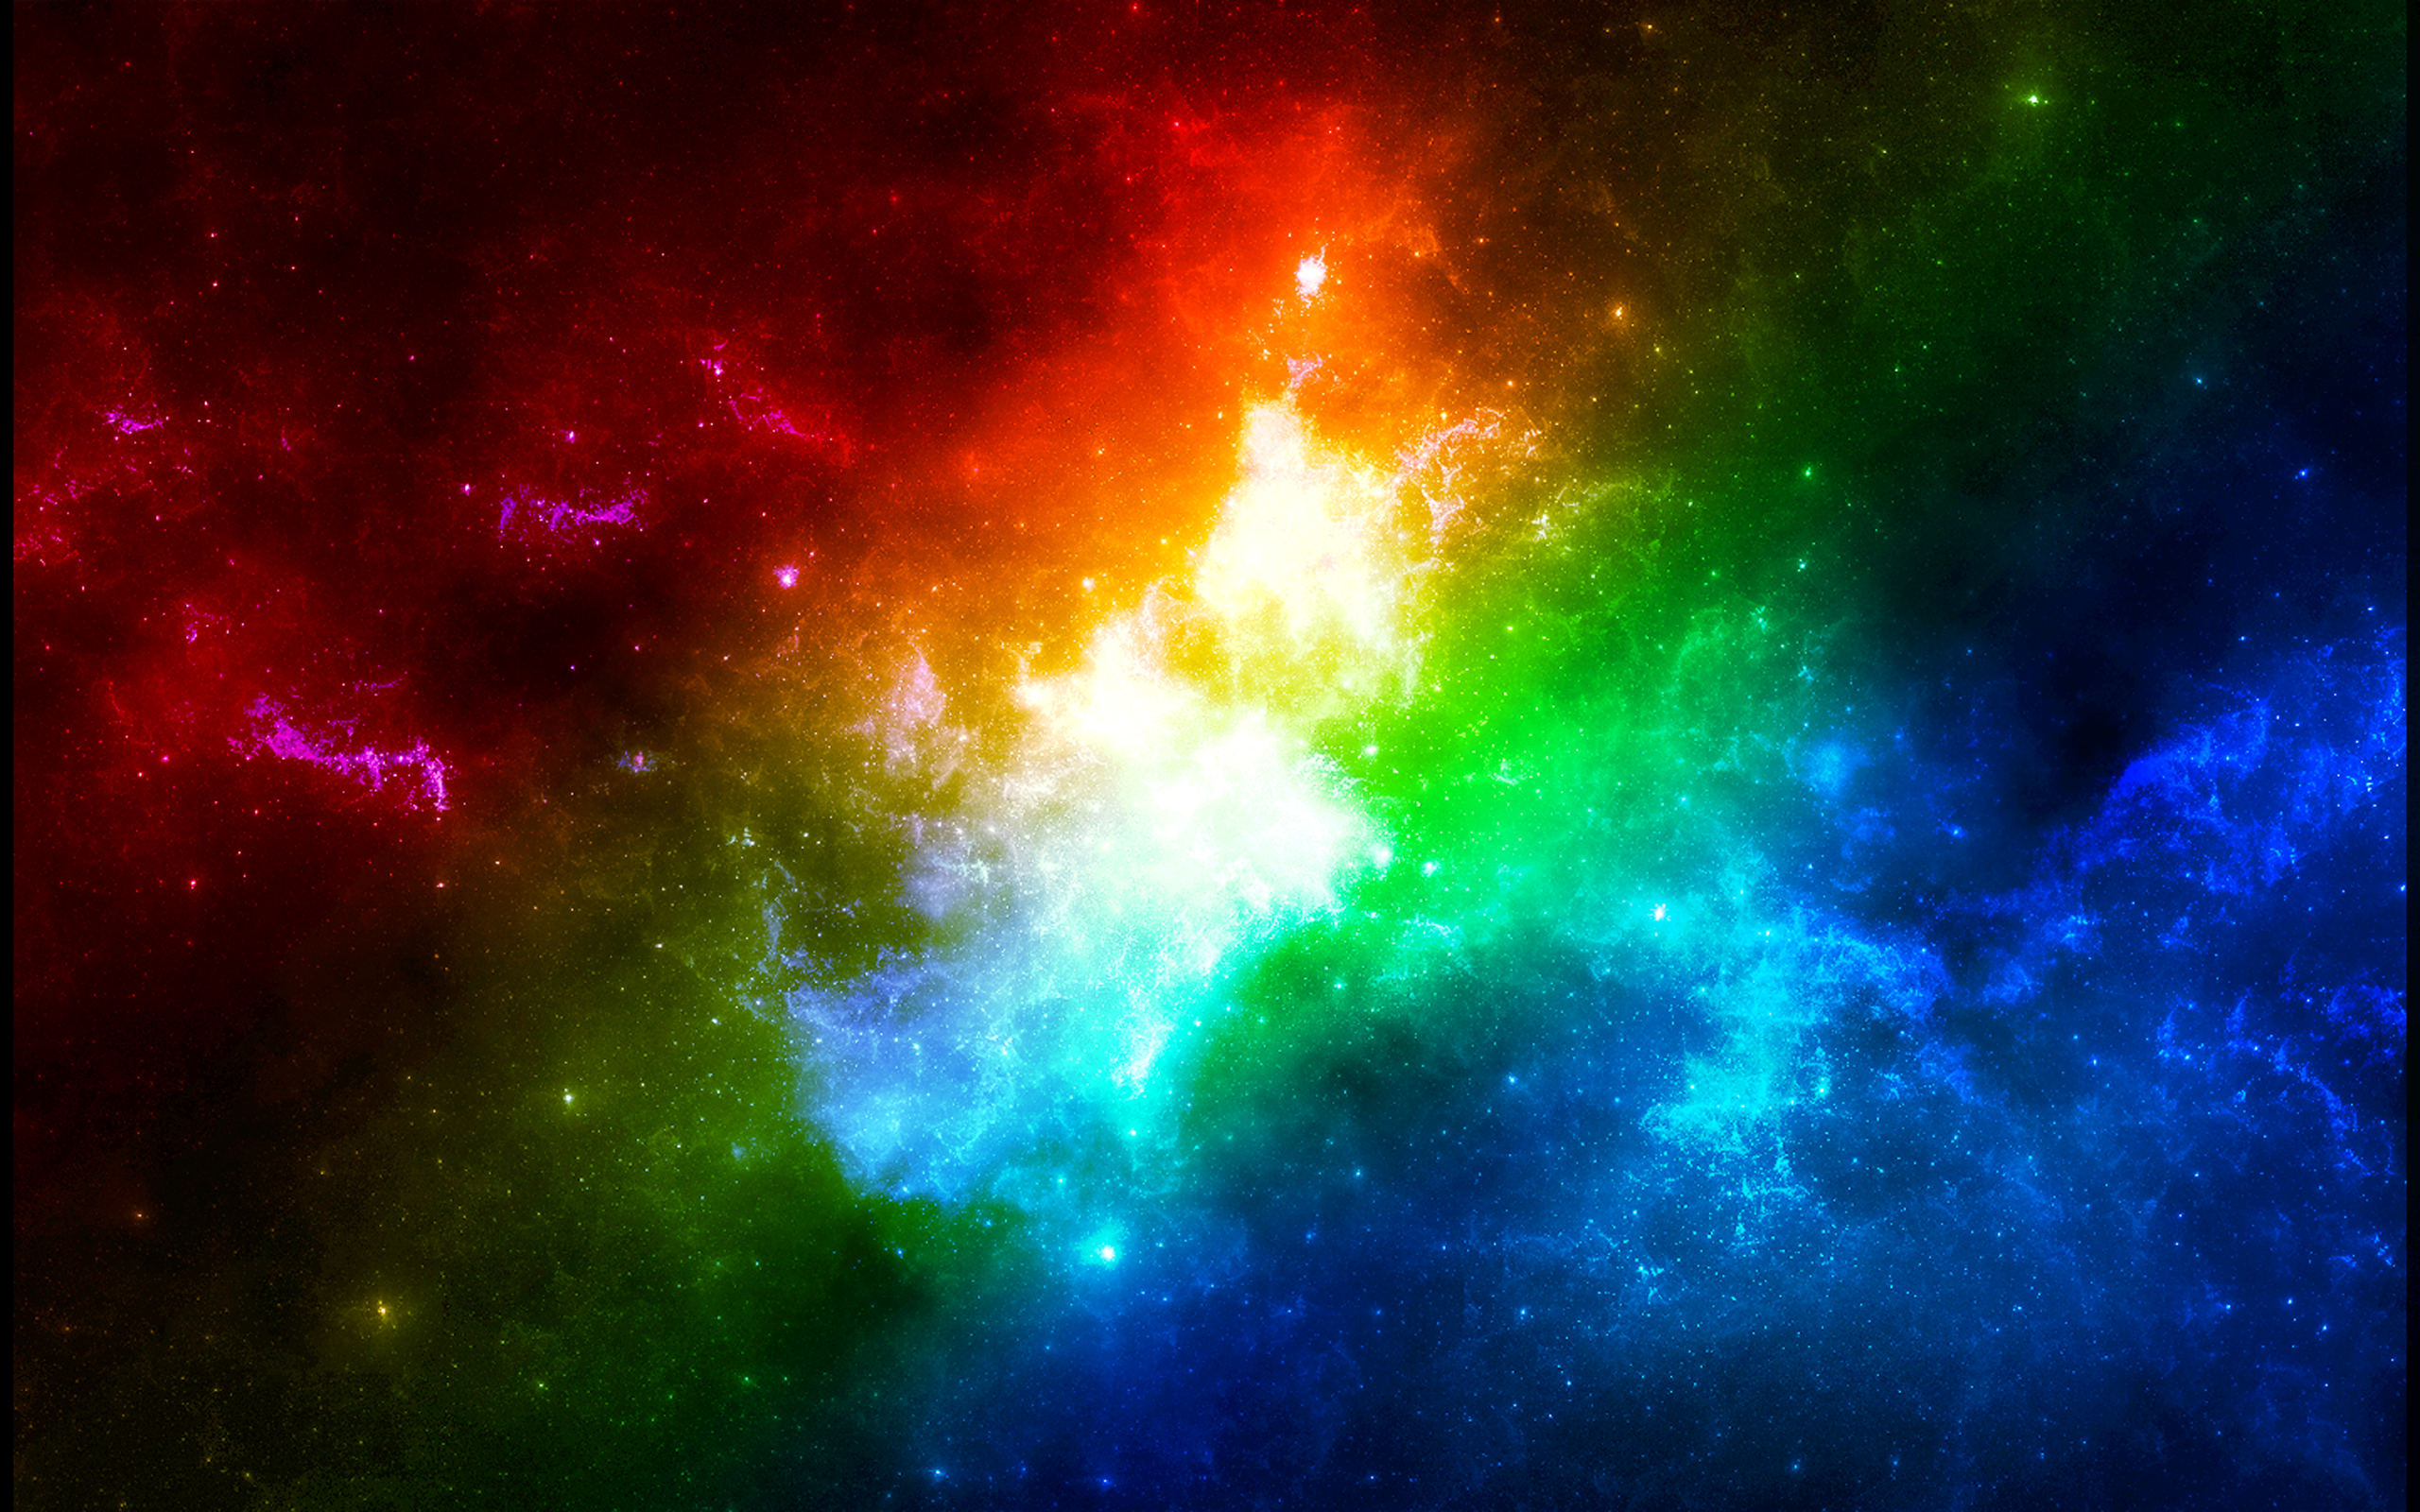 Hd wallpaper colour - Colors In Space Wallpapers Hd Wallpapers